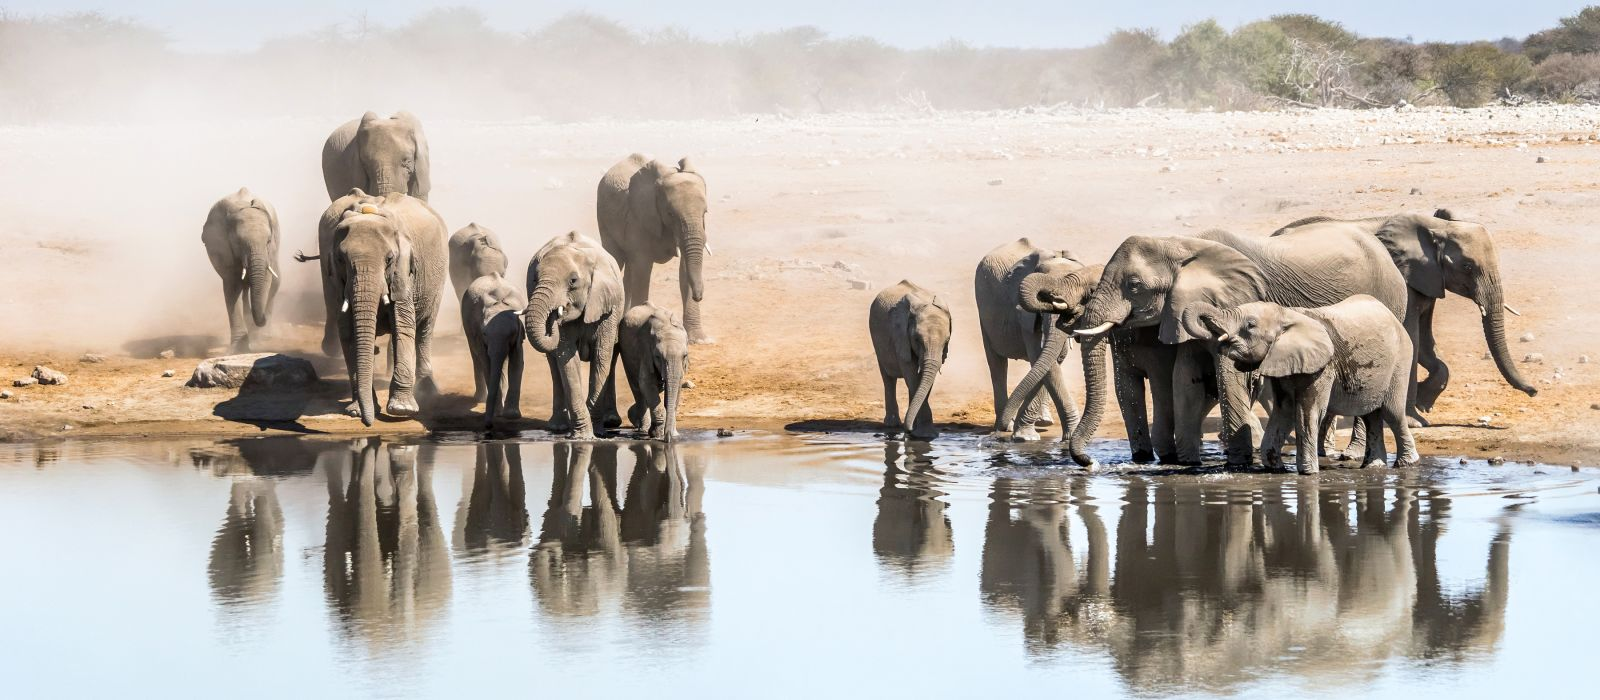 Large family of African elephants drinking at a waterhole in Etosha national park. Namibia, Africa